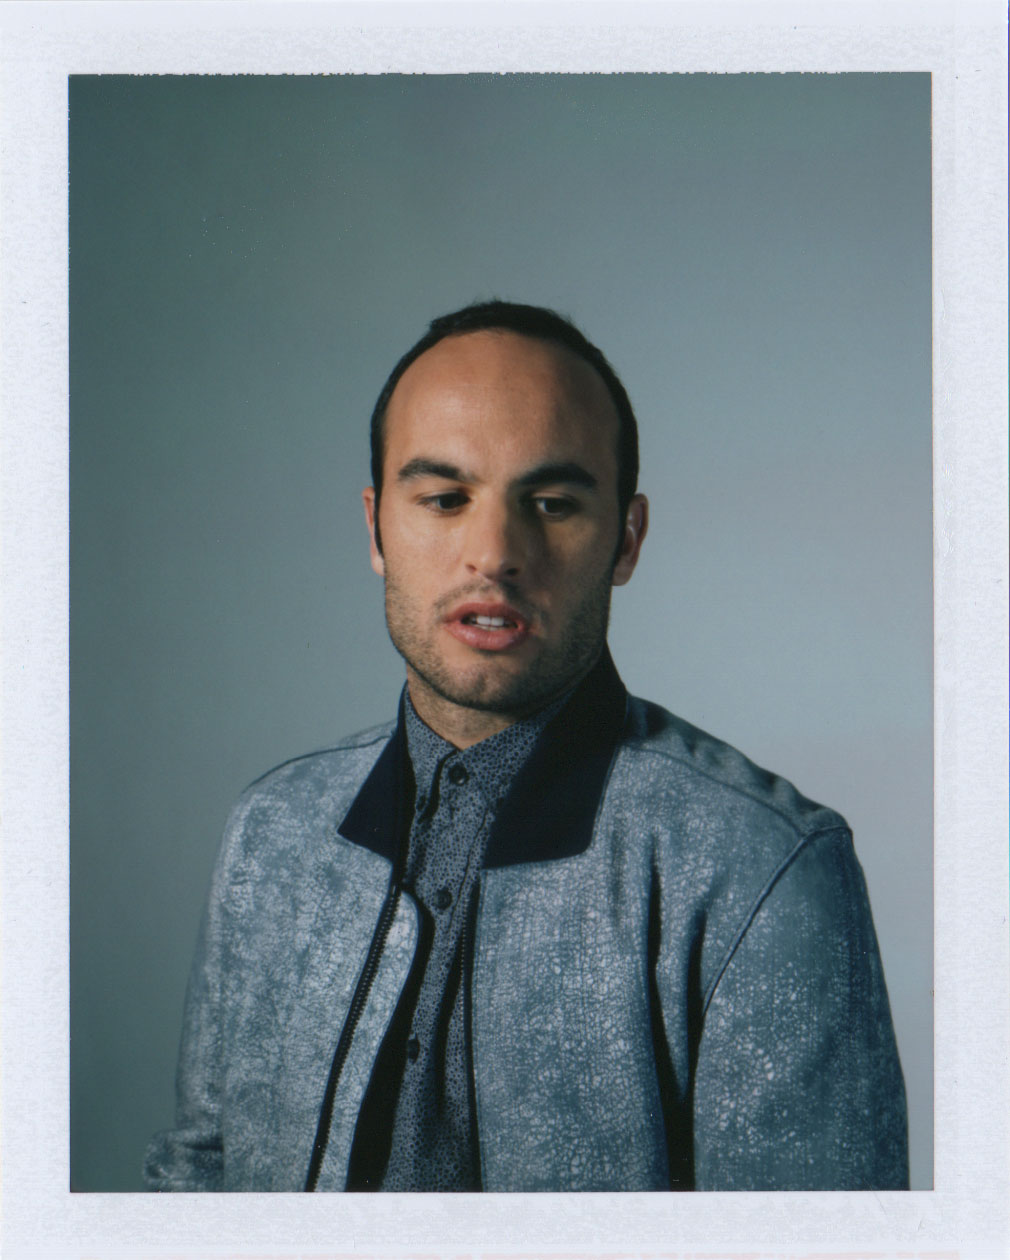 Landon-Donovan-head-shot.jpg